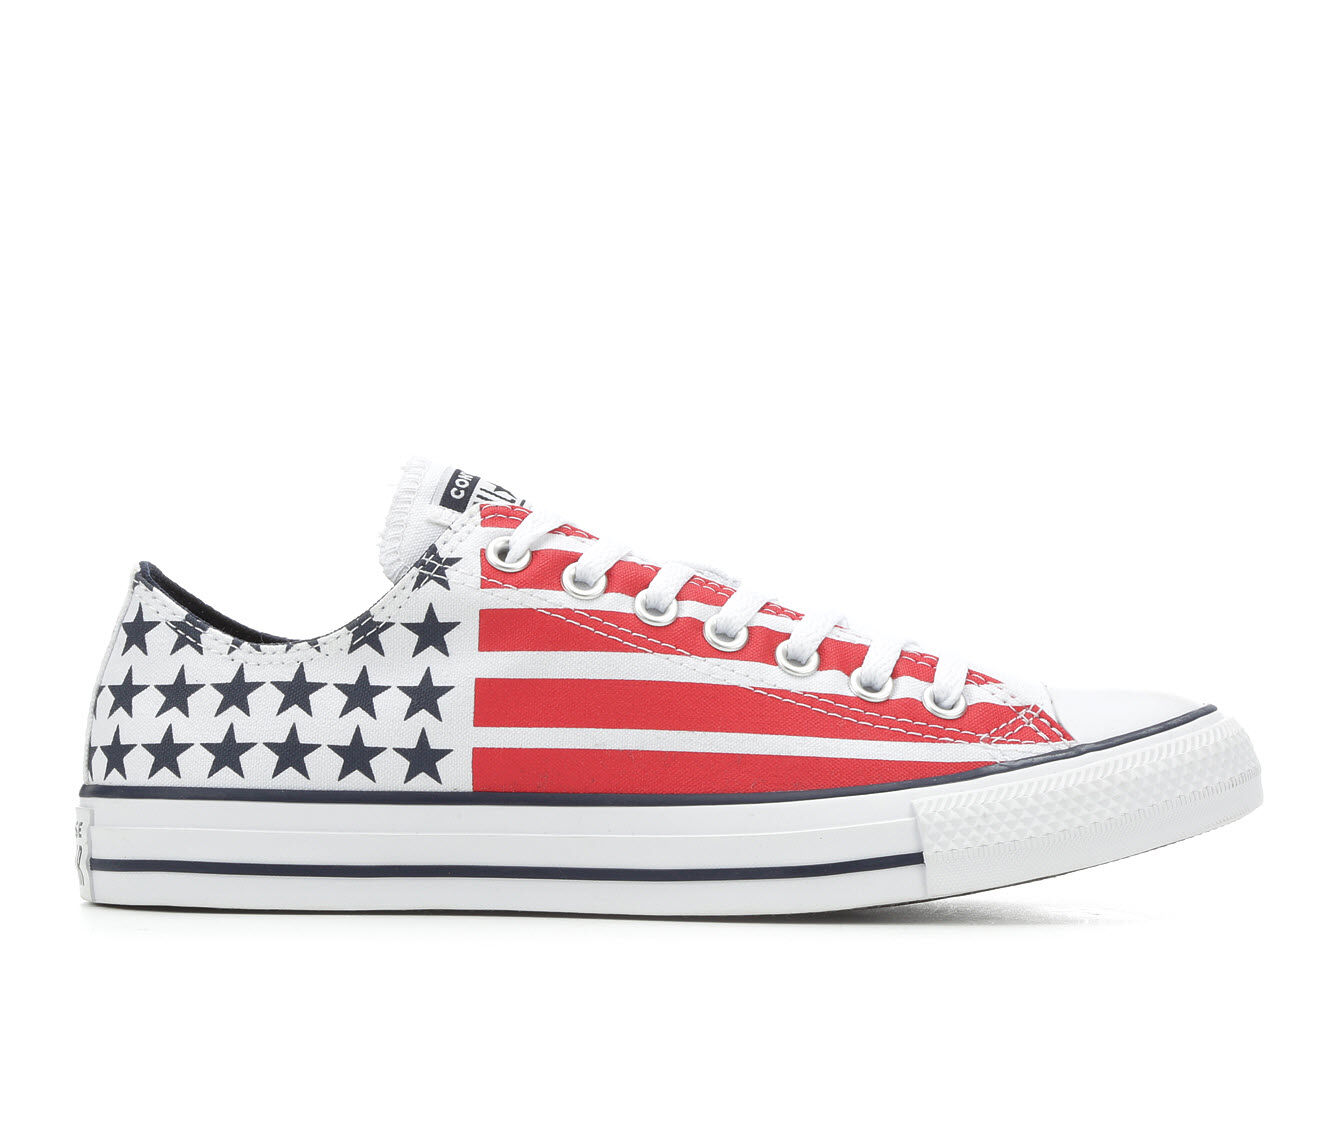 Converse Shoes and Sneakers | Shoe Carnival